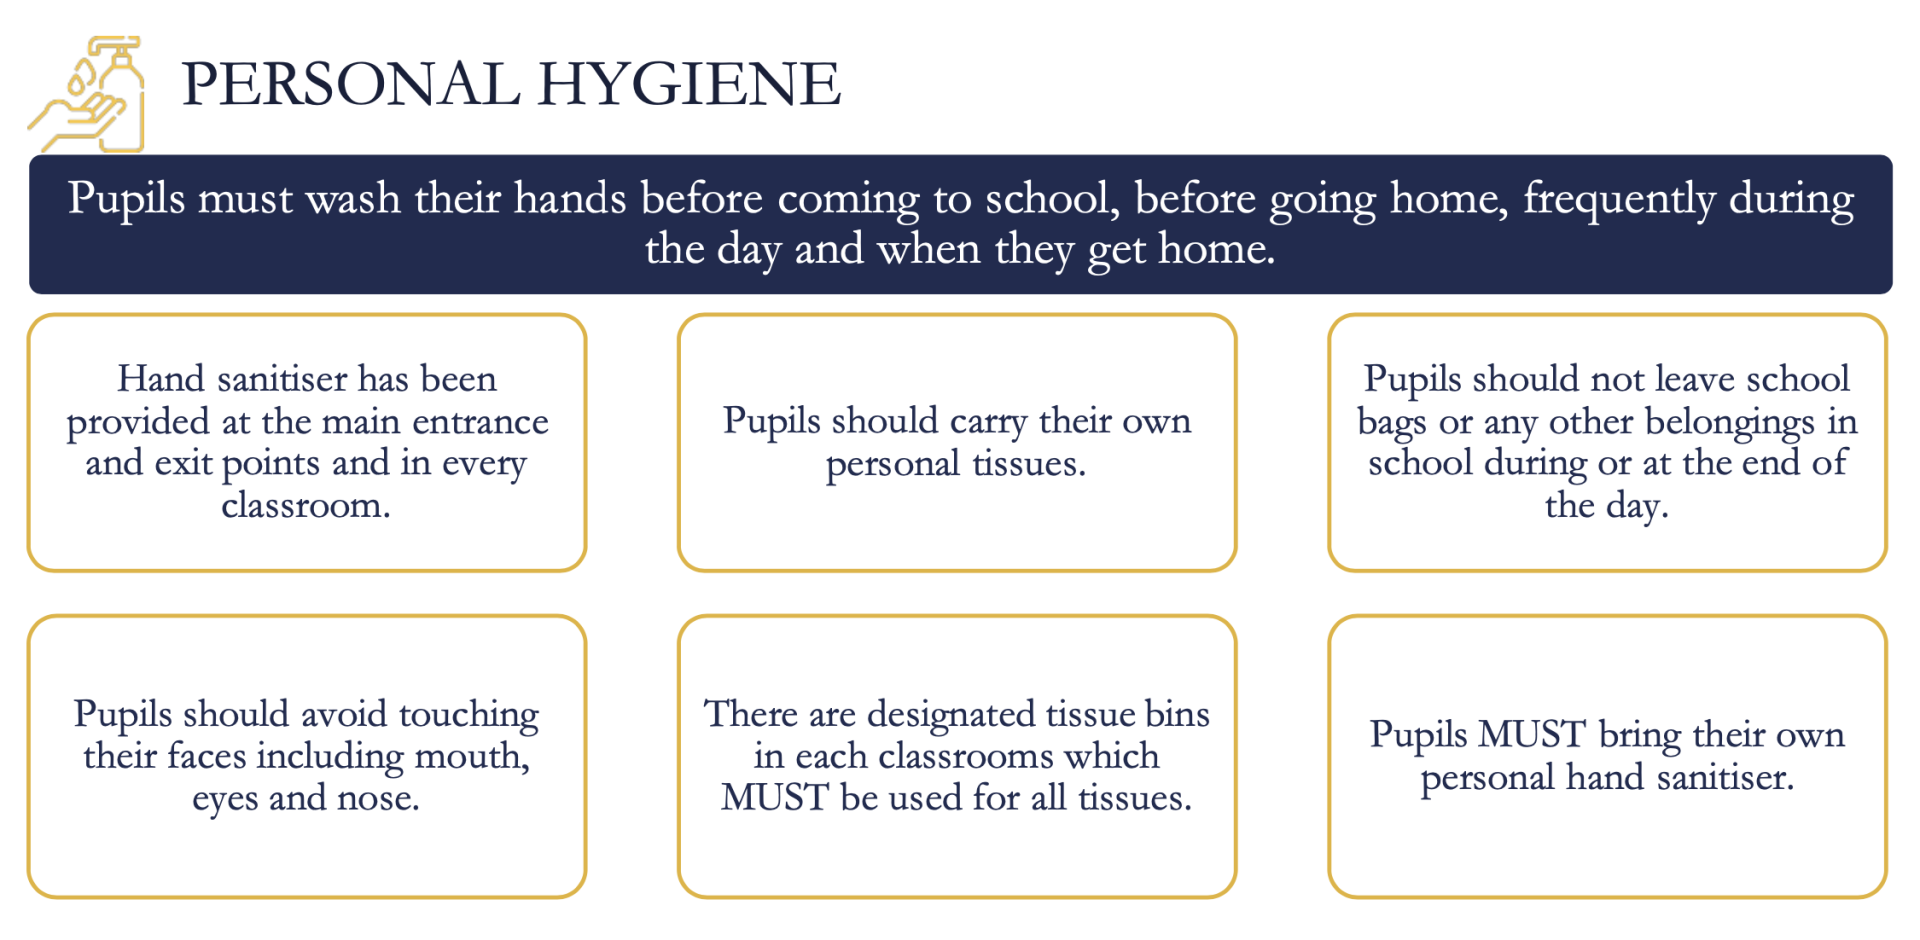 Covid Personal Hygiene Guidance